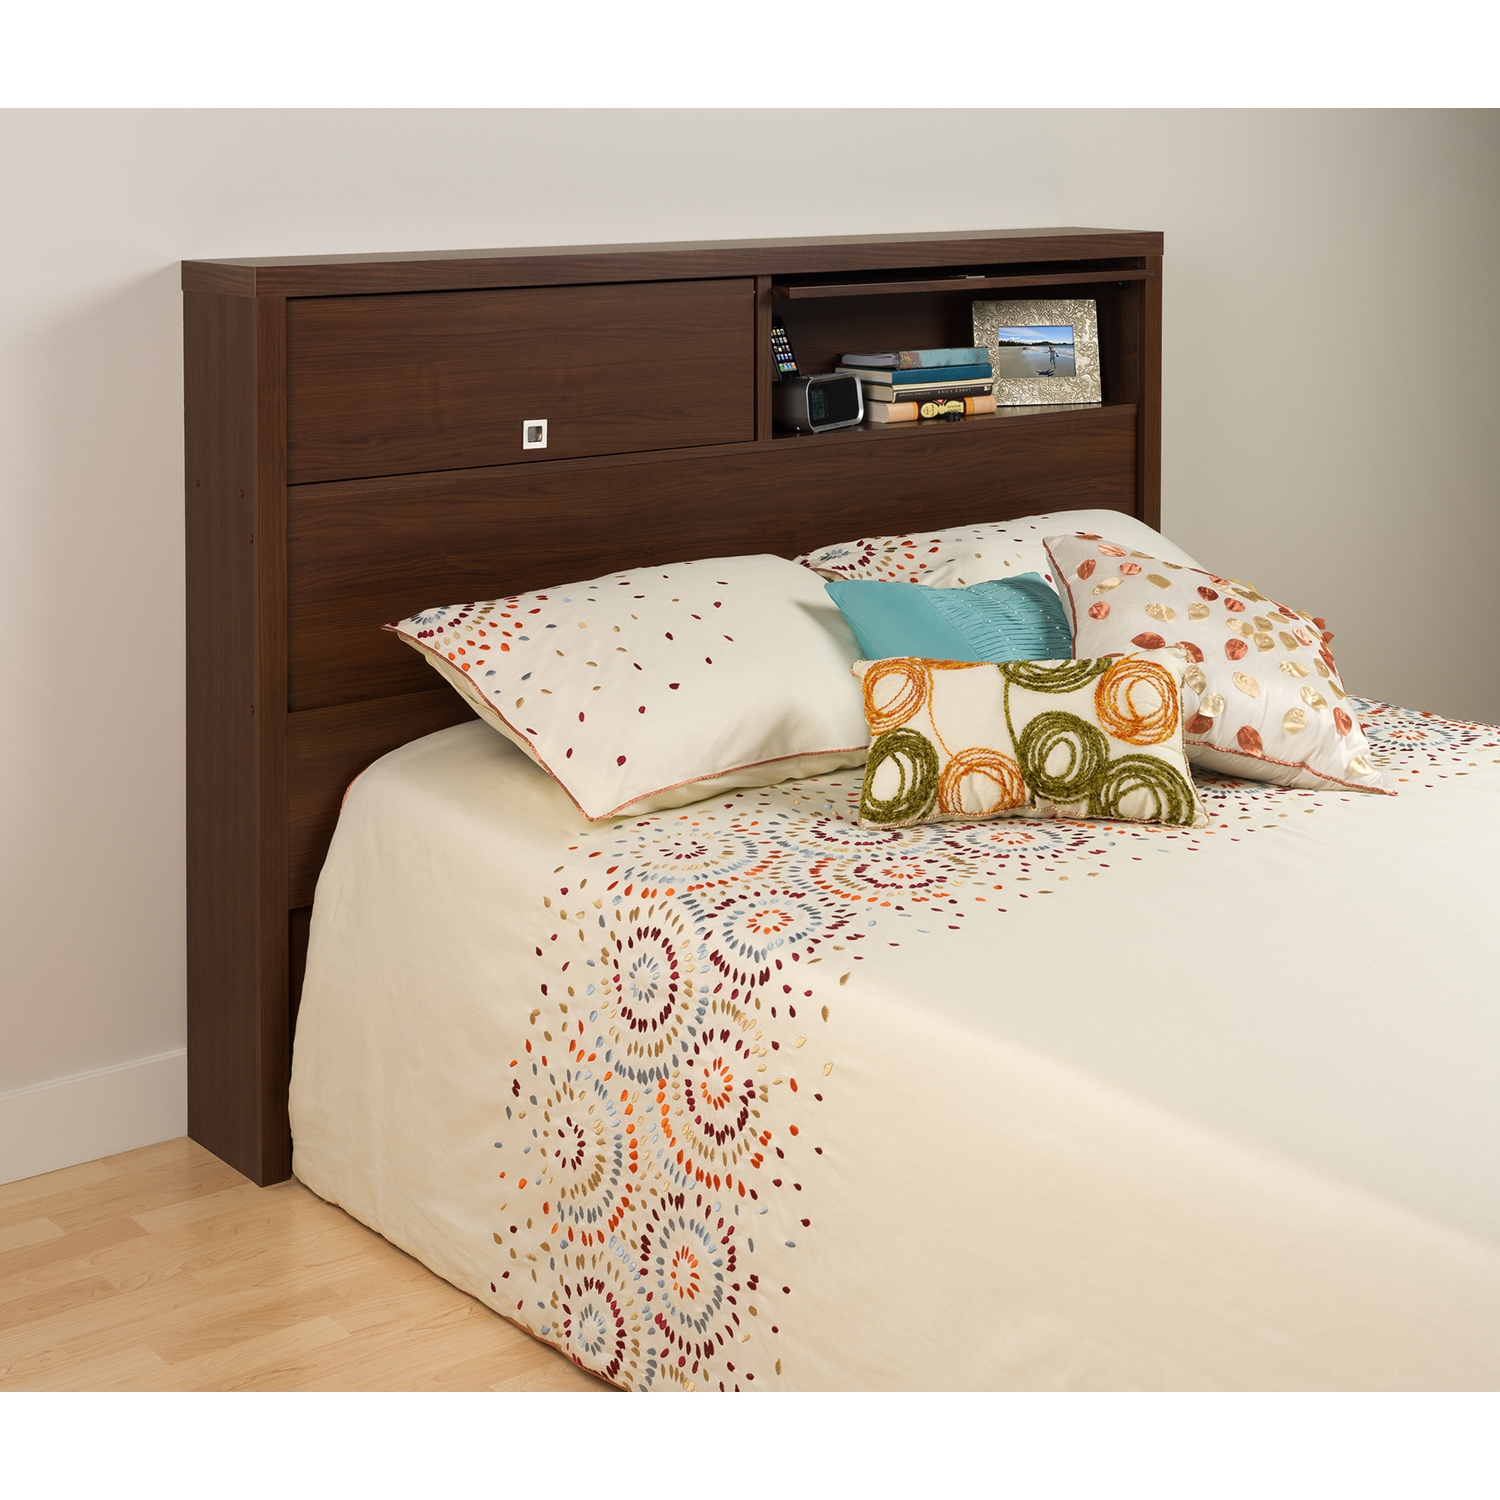 Series 9 Designer Full/Queen 2-Door Headboard - Warm Cherry - PRE-LHFX-0502-1